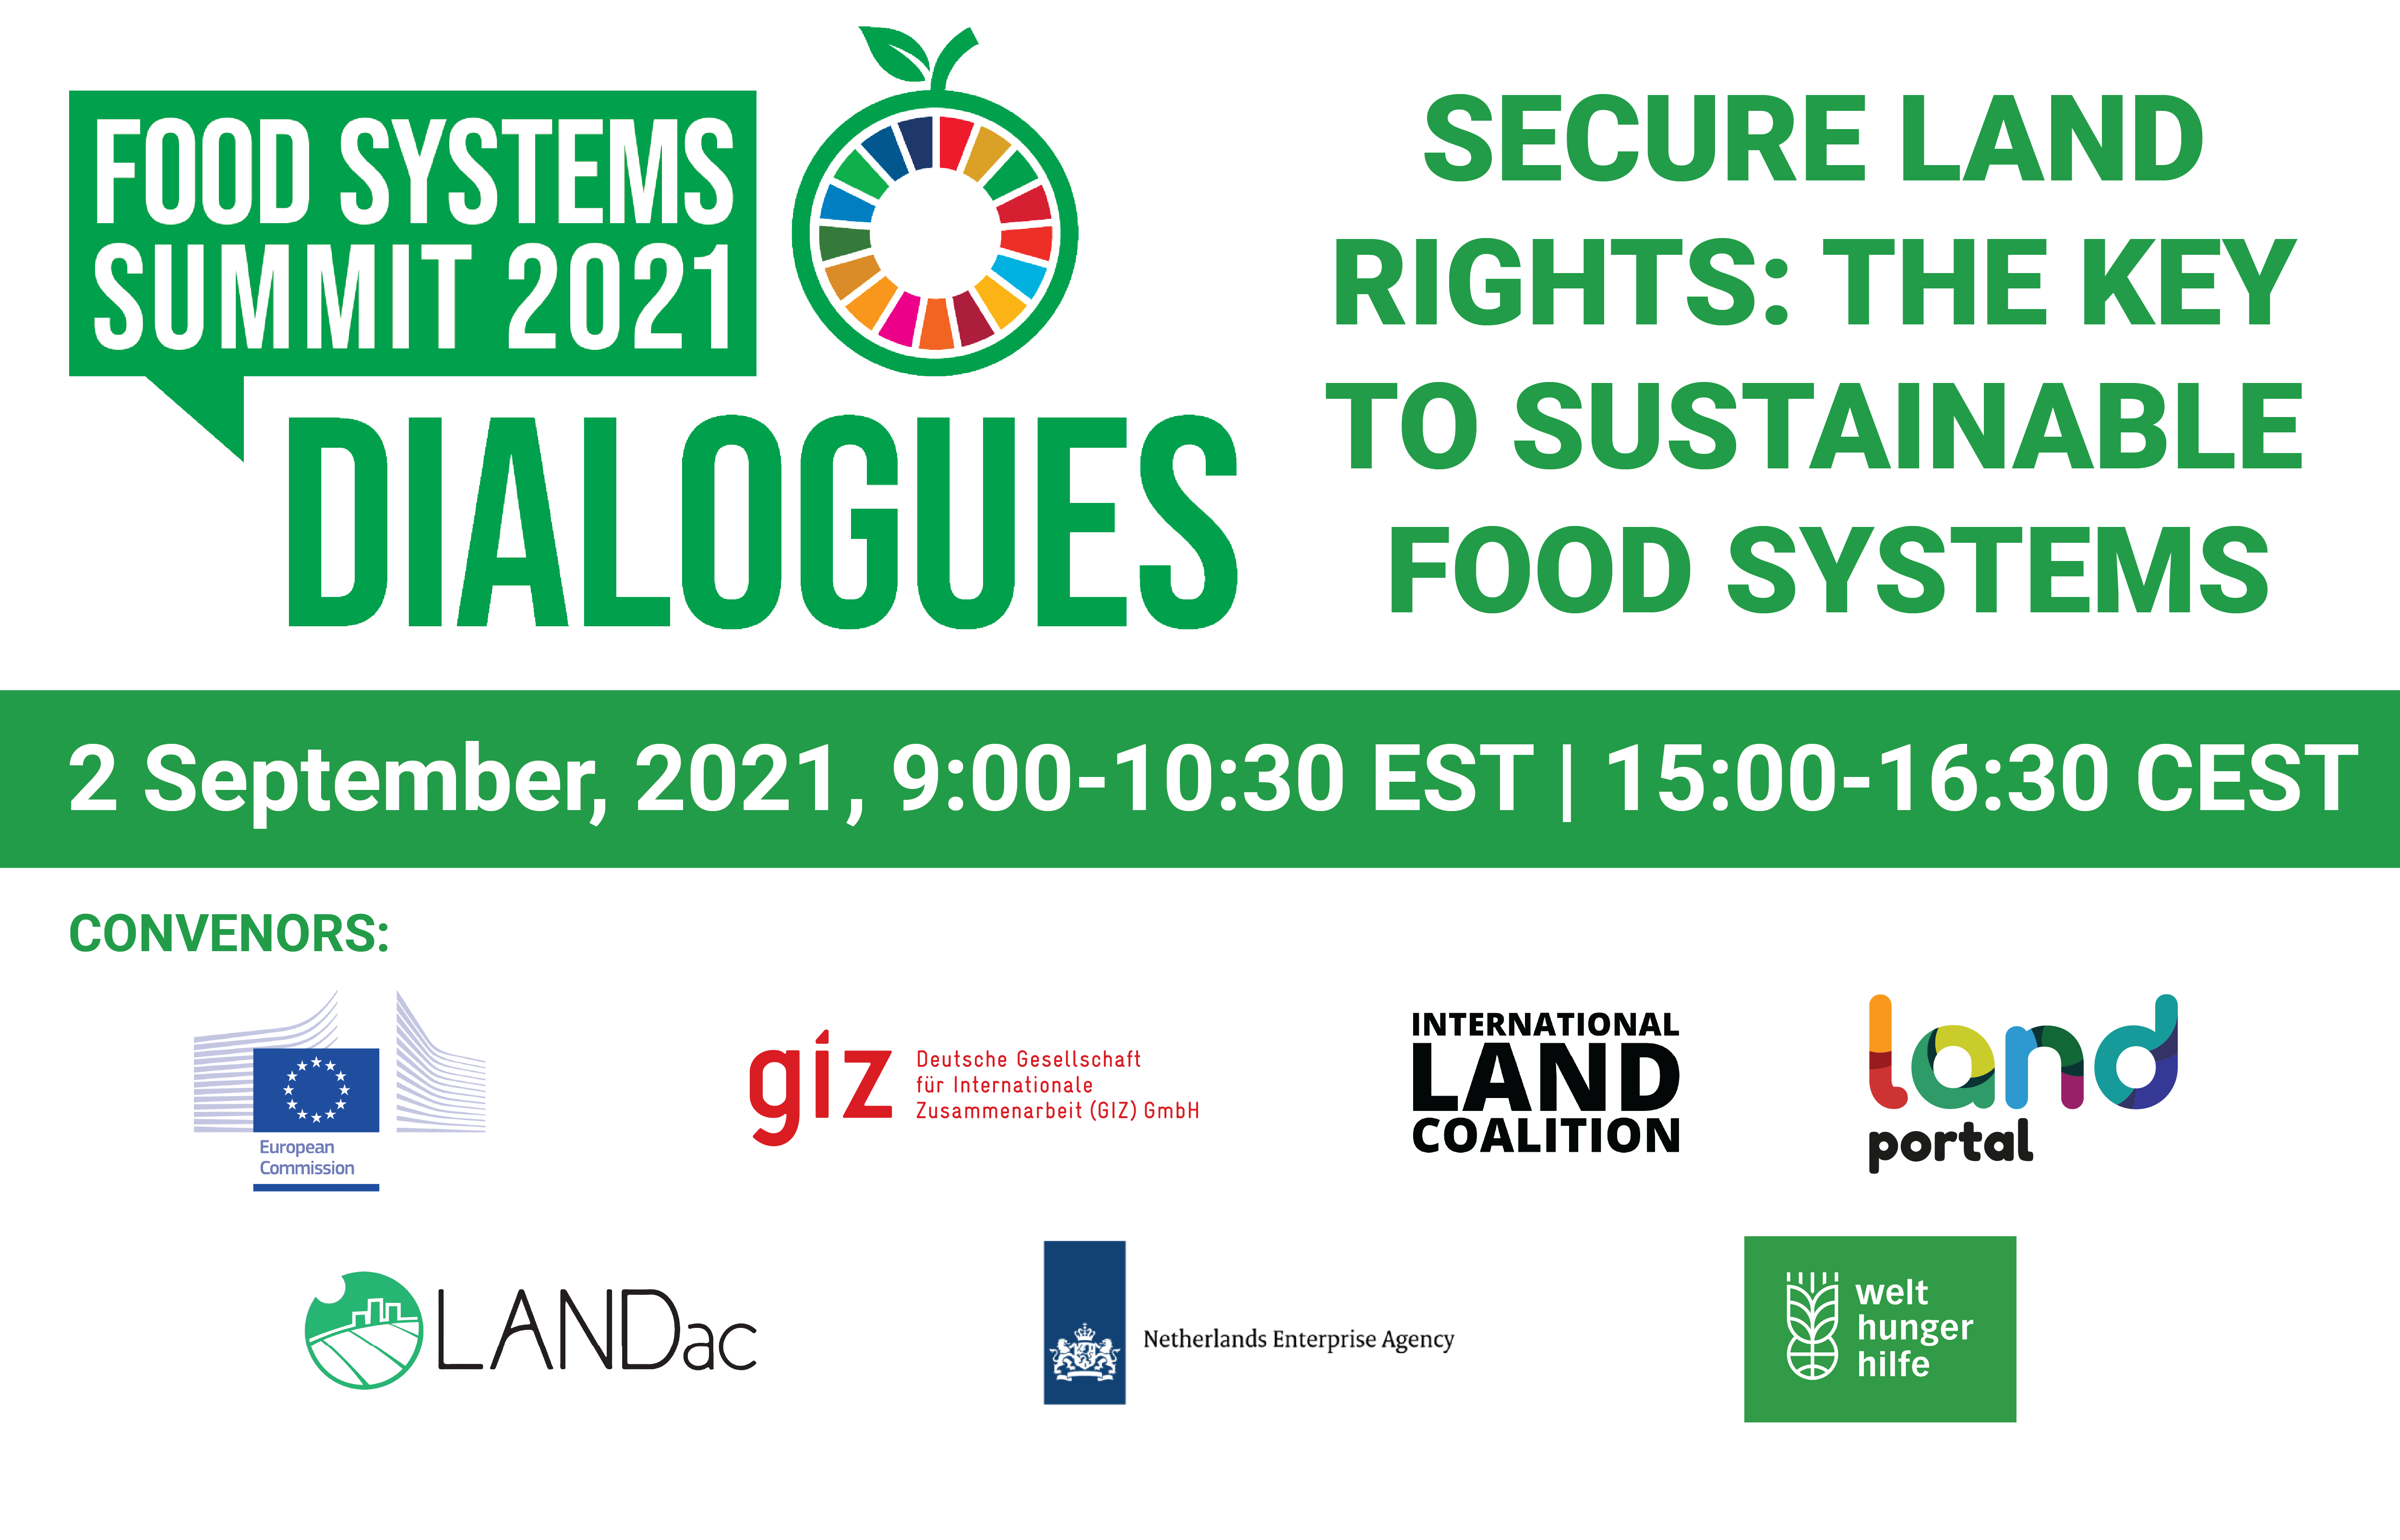 Secure Land Rights: The Key To Sustainable Food Systems